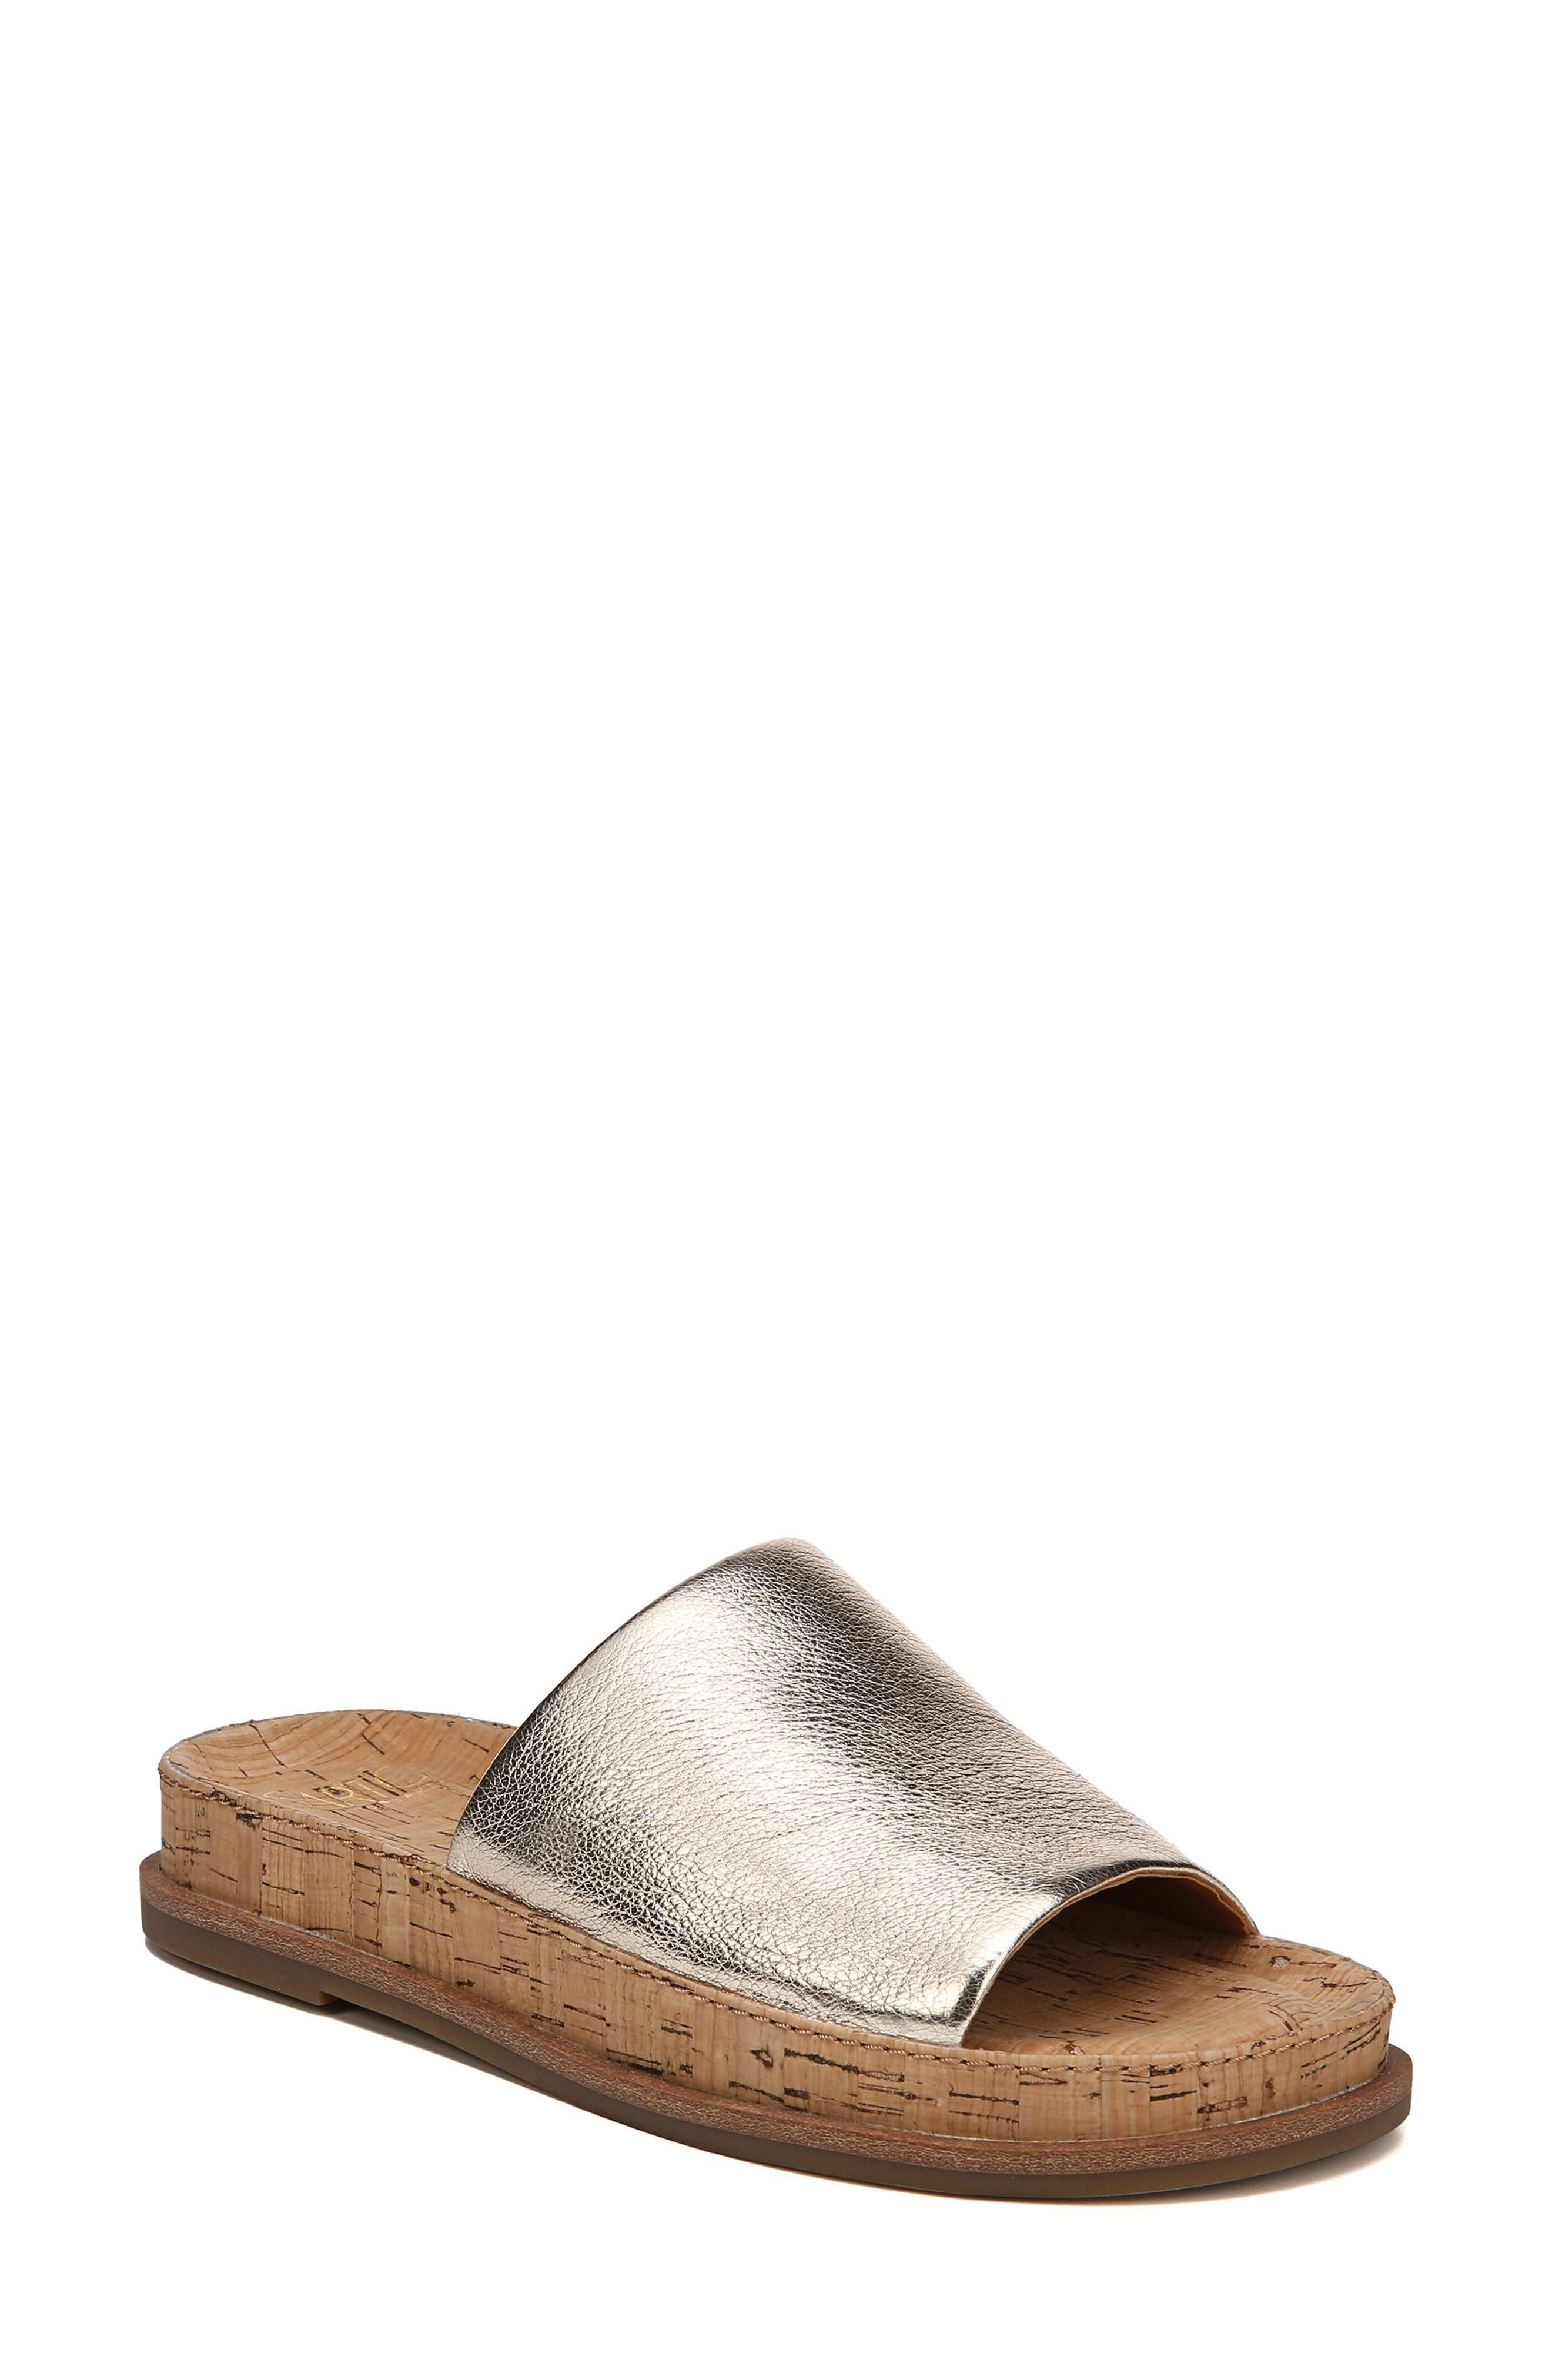 Tal Slide Sandal,                             Main thumbnail 3, color,